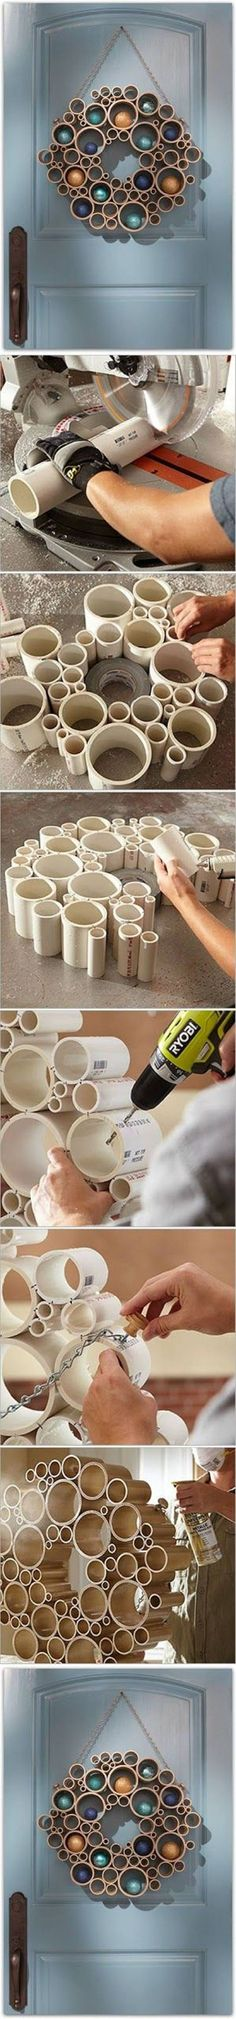 TOP 10 Home decor DIY tutorials could use. Tp, ppr towel, diff size rapping ppr, and tulle rolls